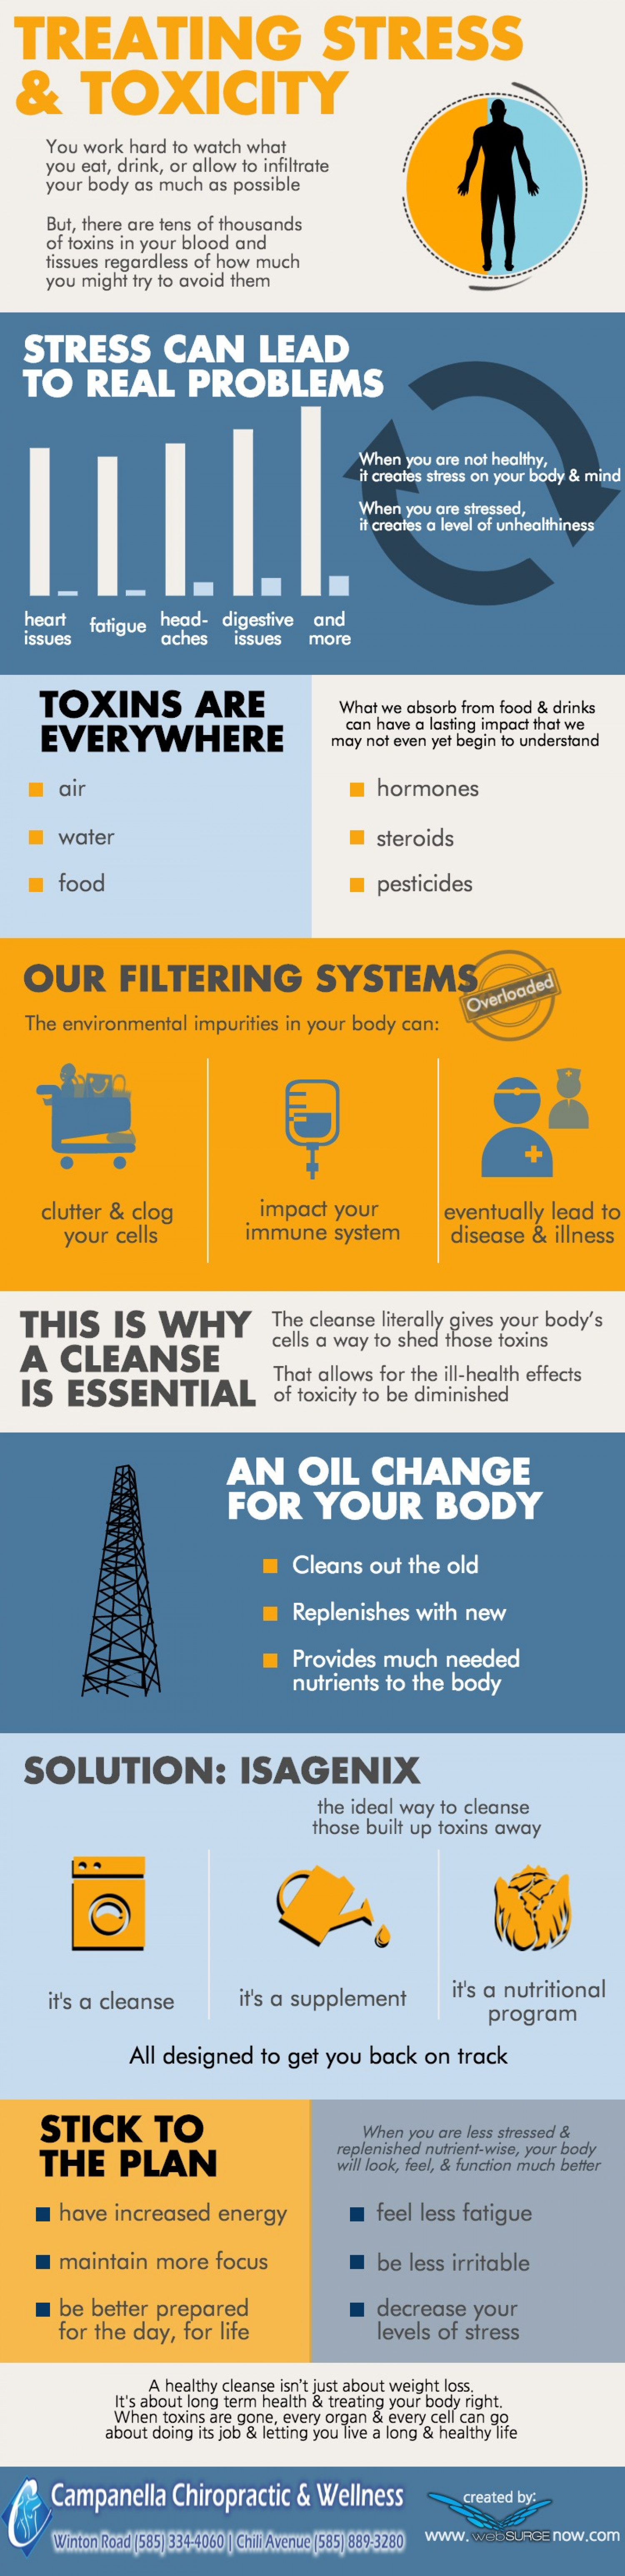 Treating Stress & Toxicity Infographic